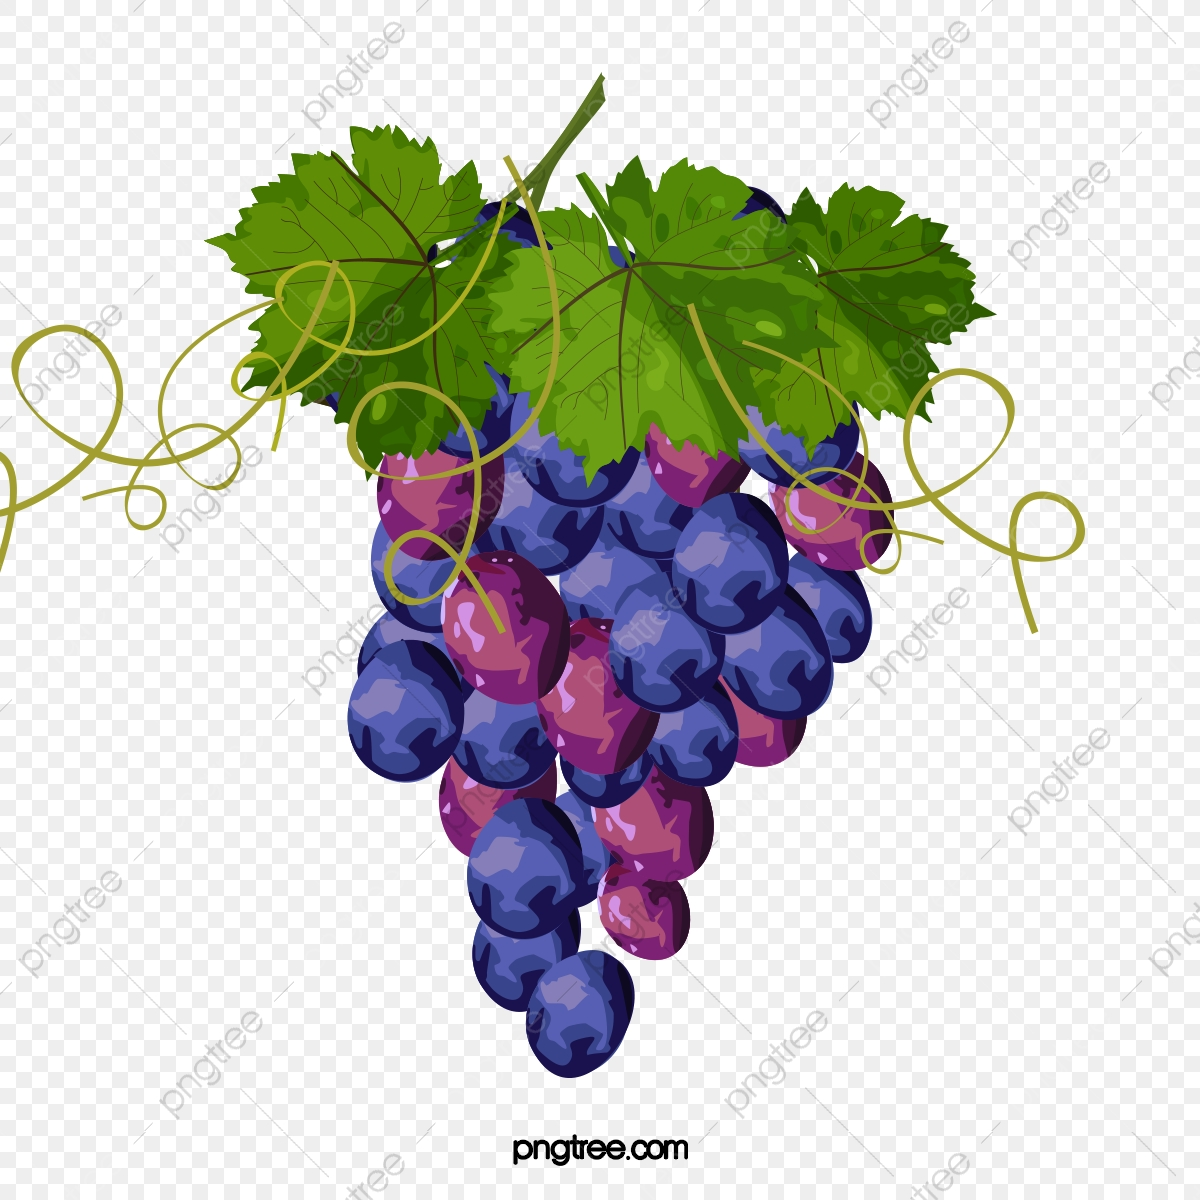 Hand watercolor grape png. Grapes clipart painted